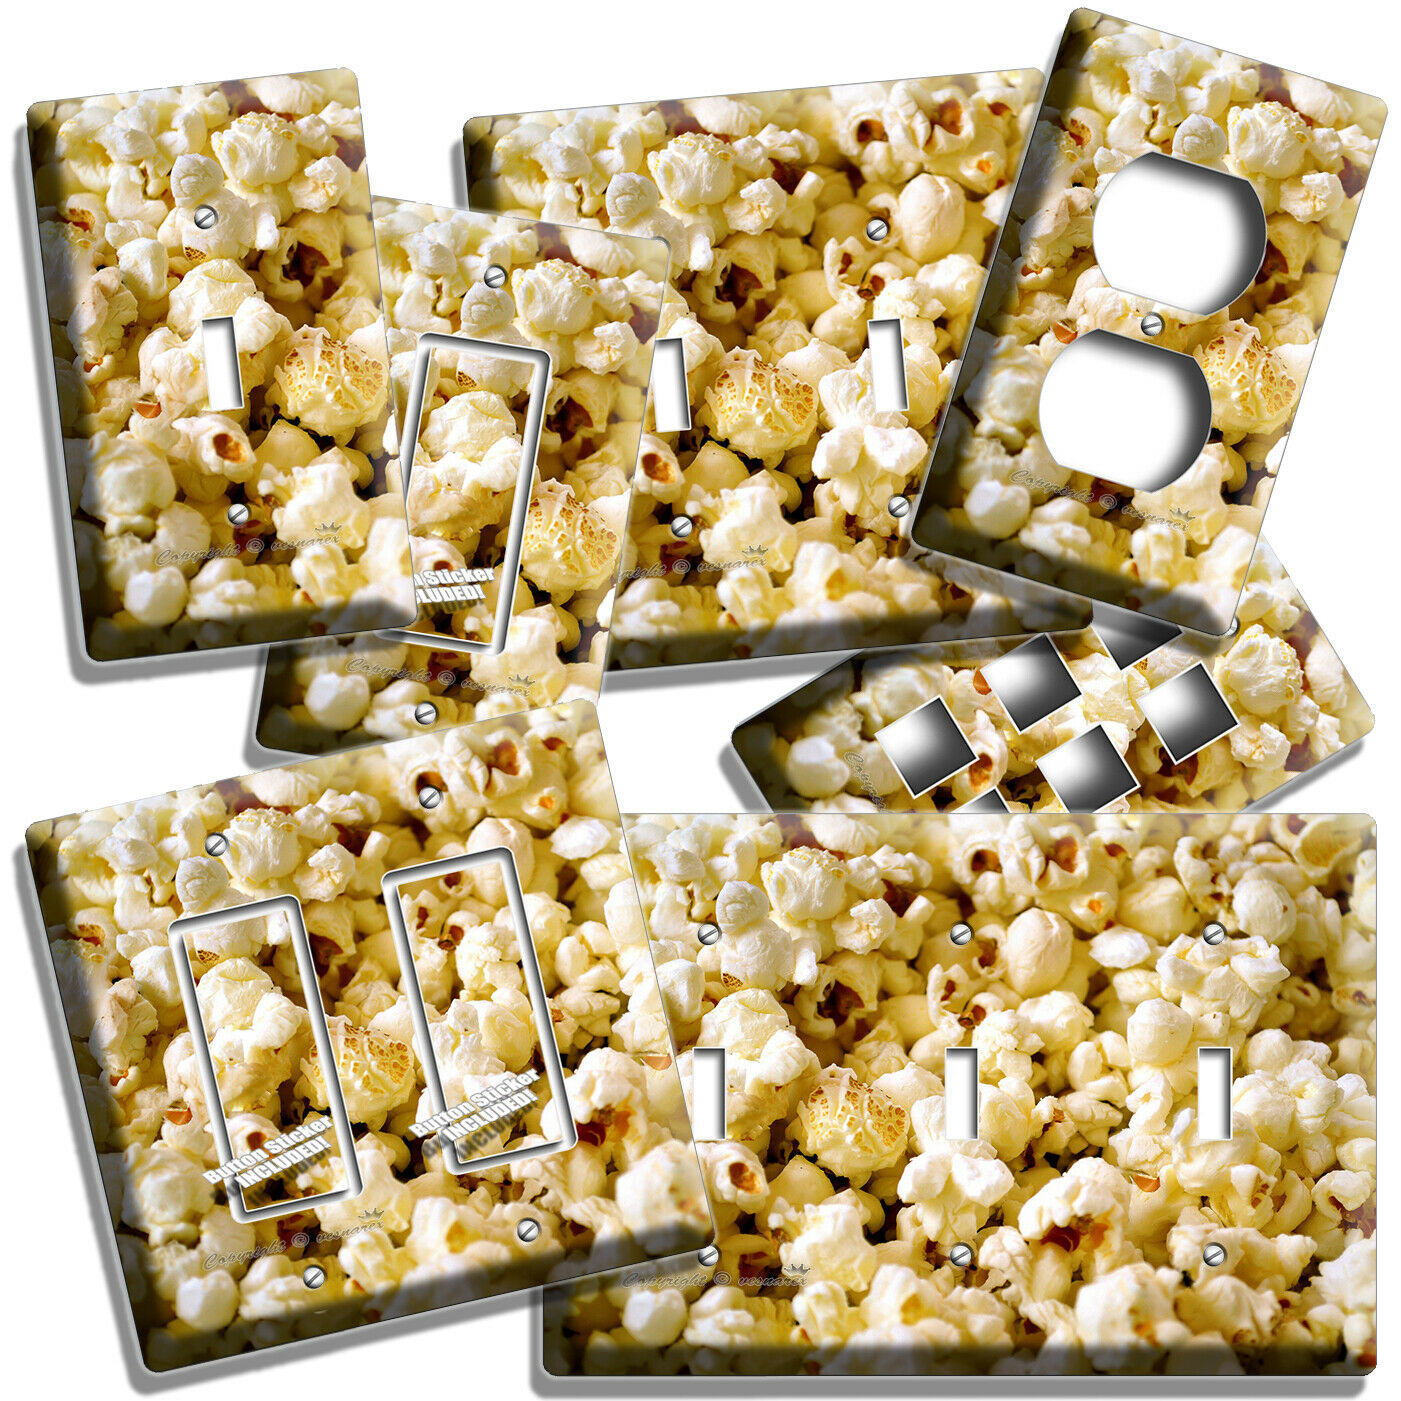 POPCORN LIGHT SWITCH OUTLET WALL PLATE COVER TV ROOM HOME KI